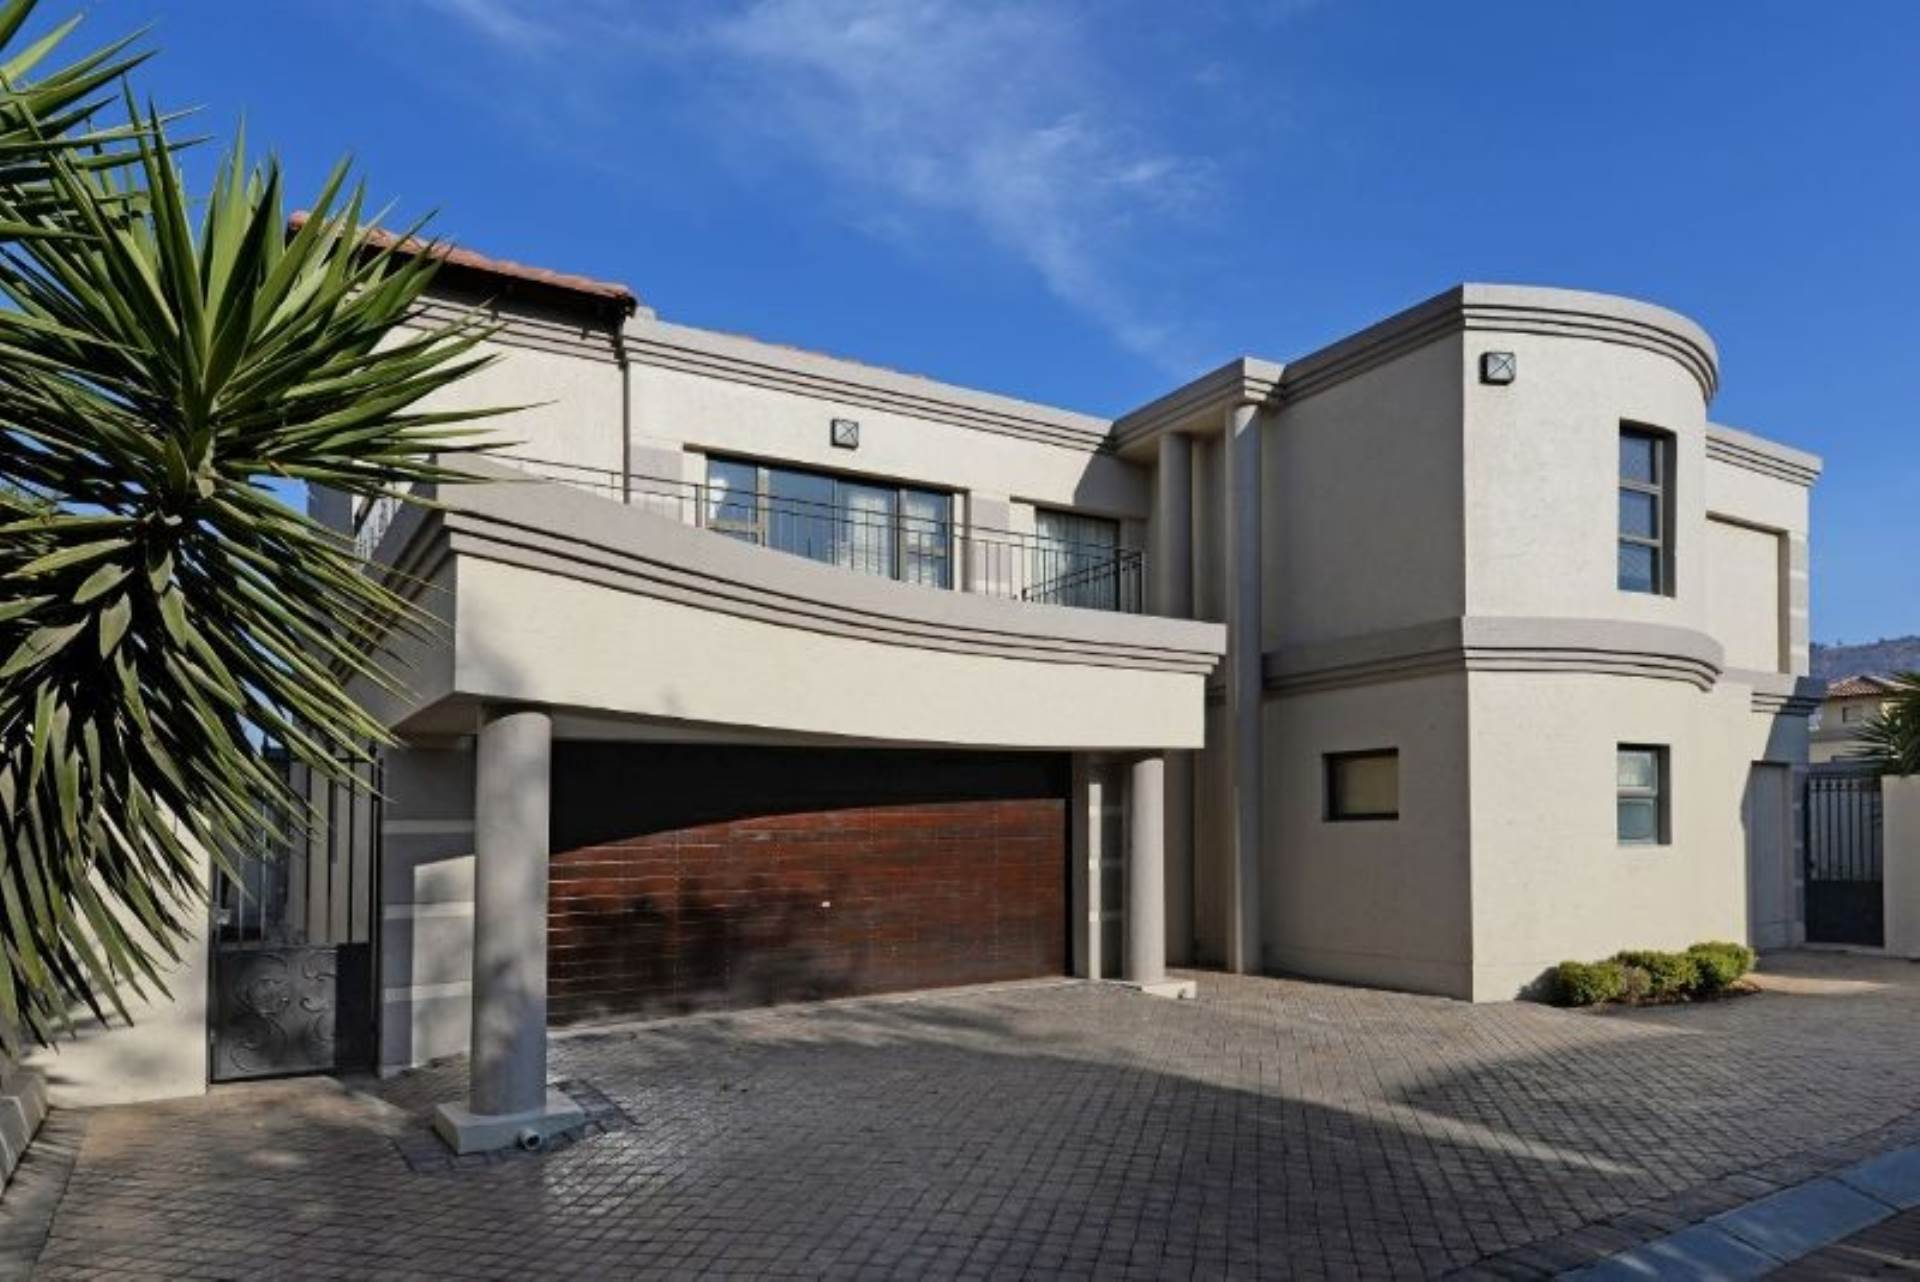 5 BedroomCluster To Rent In Morning Hill